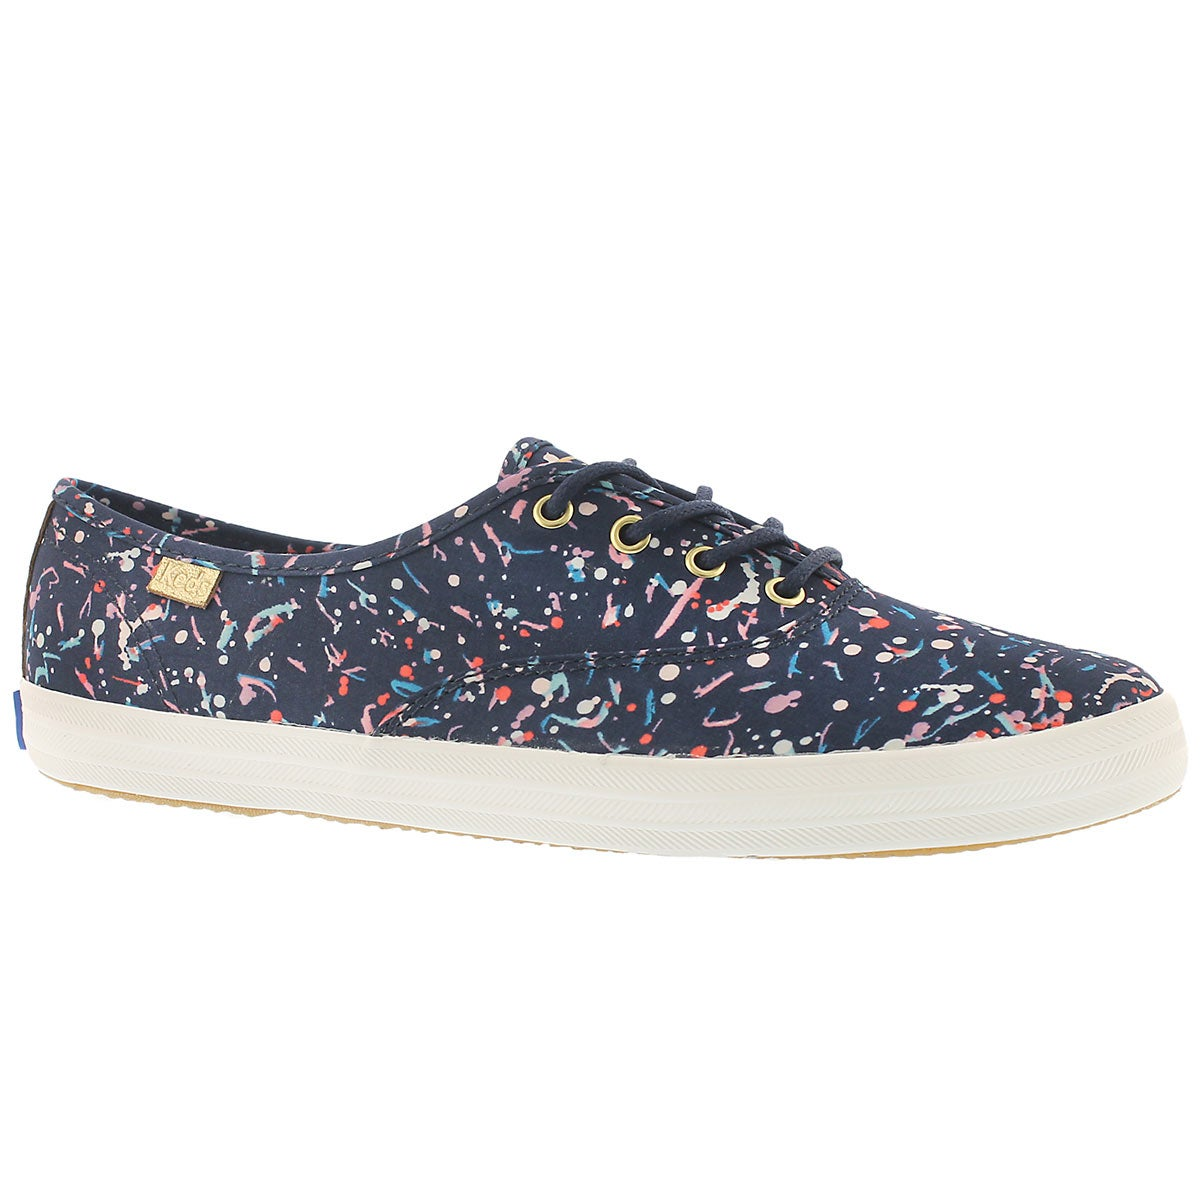 Women's CHAMPION LIBERTY navy multi sneakers